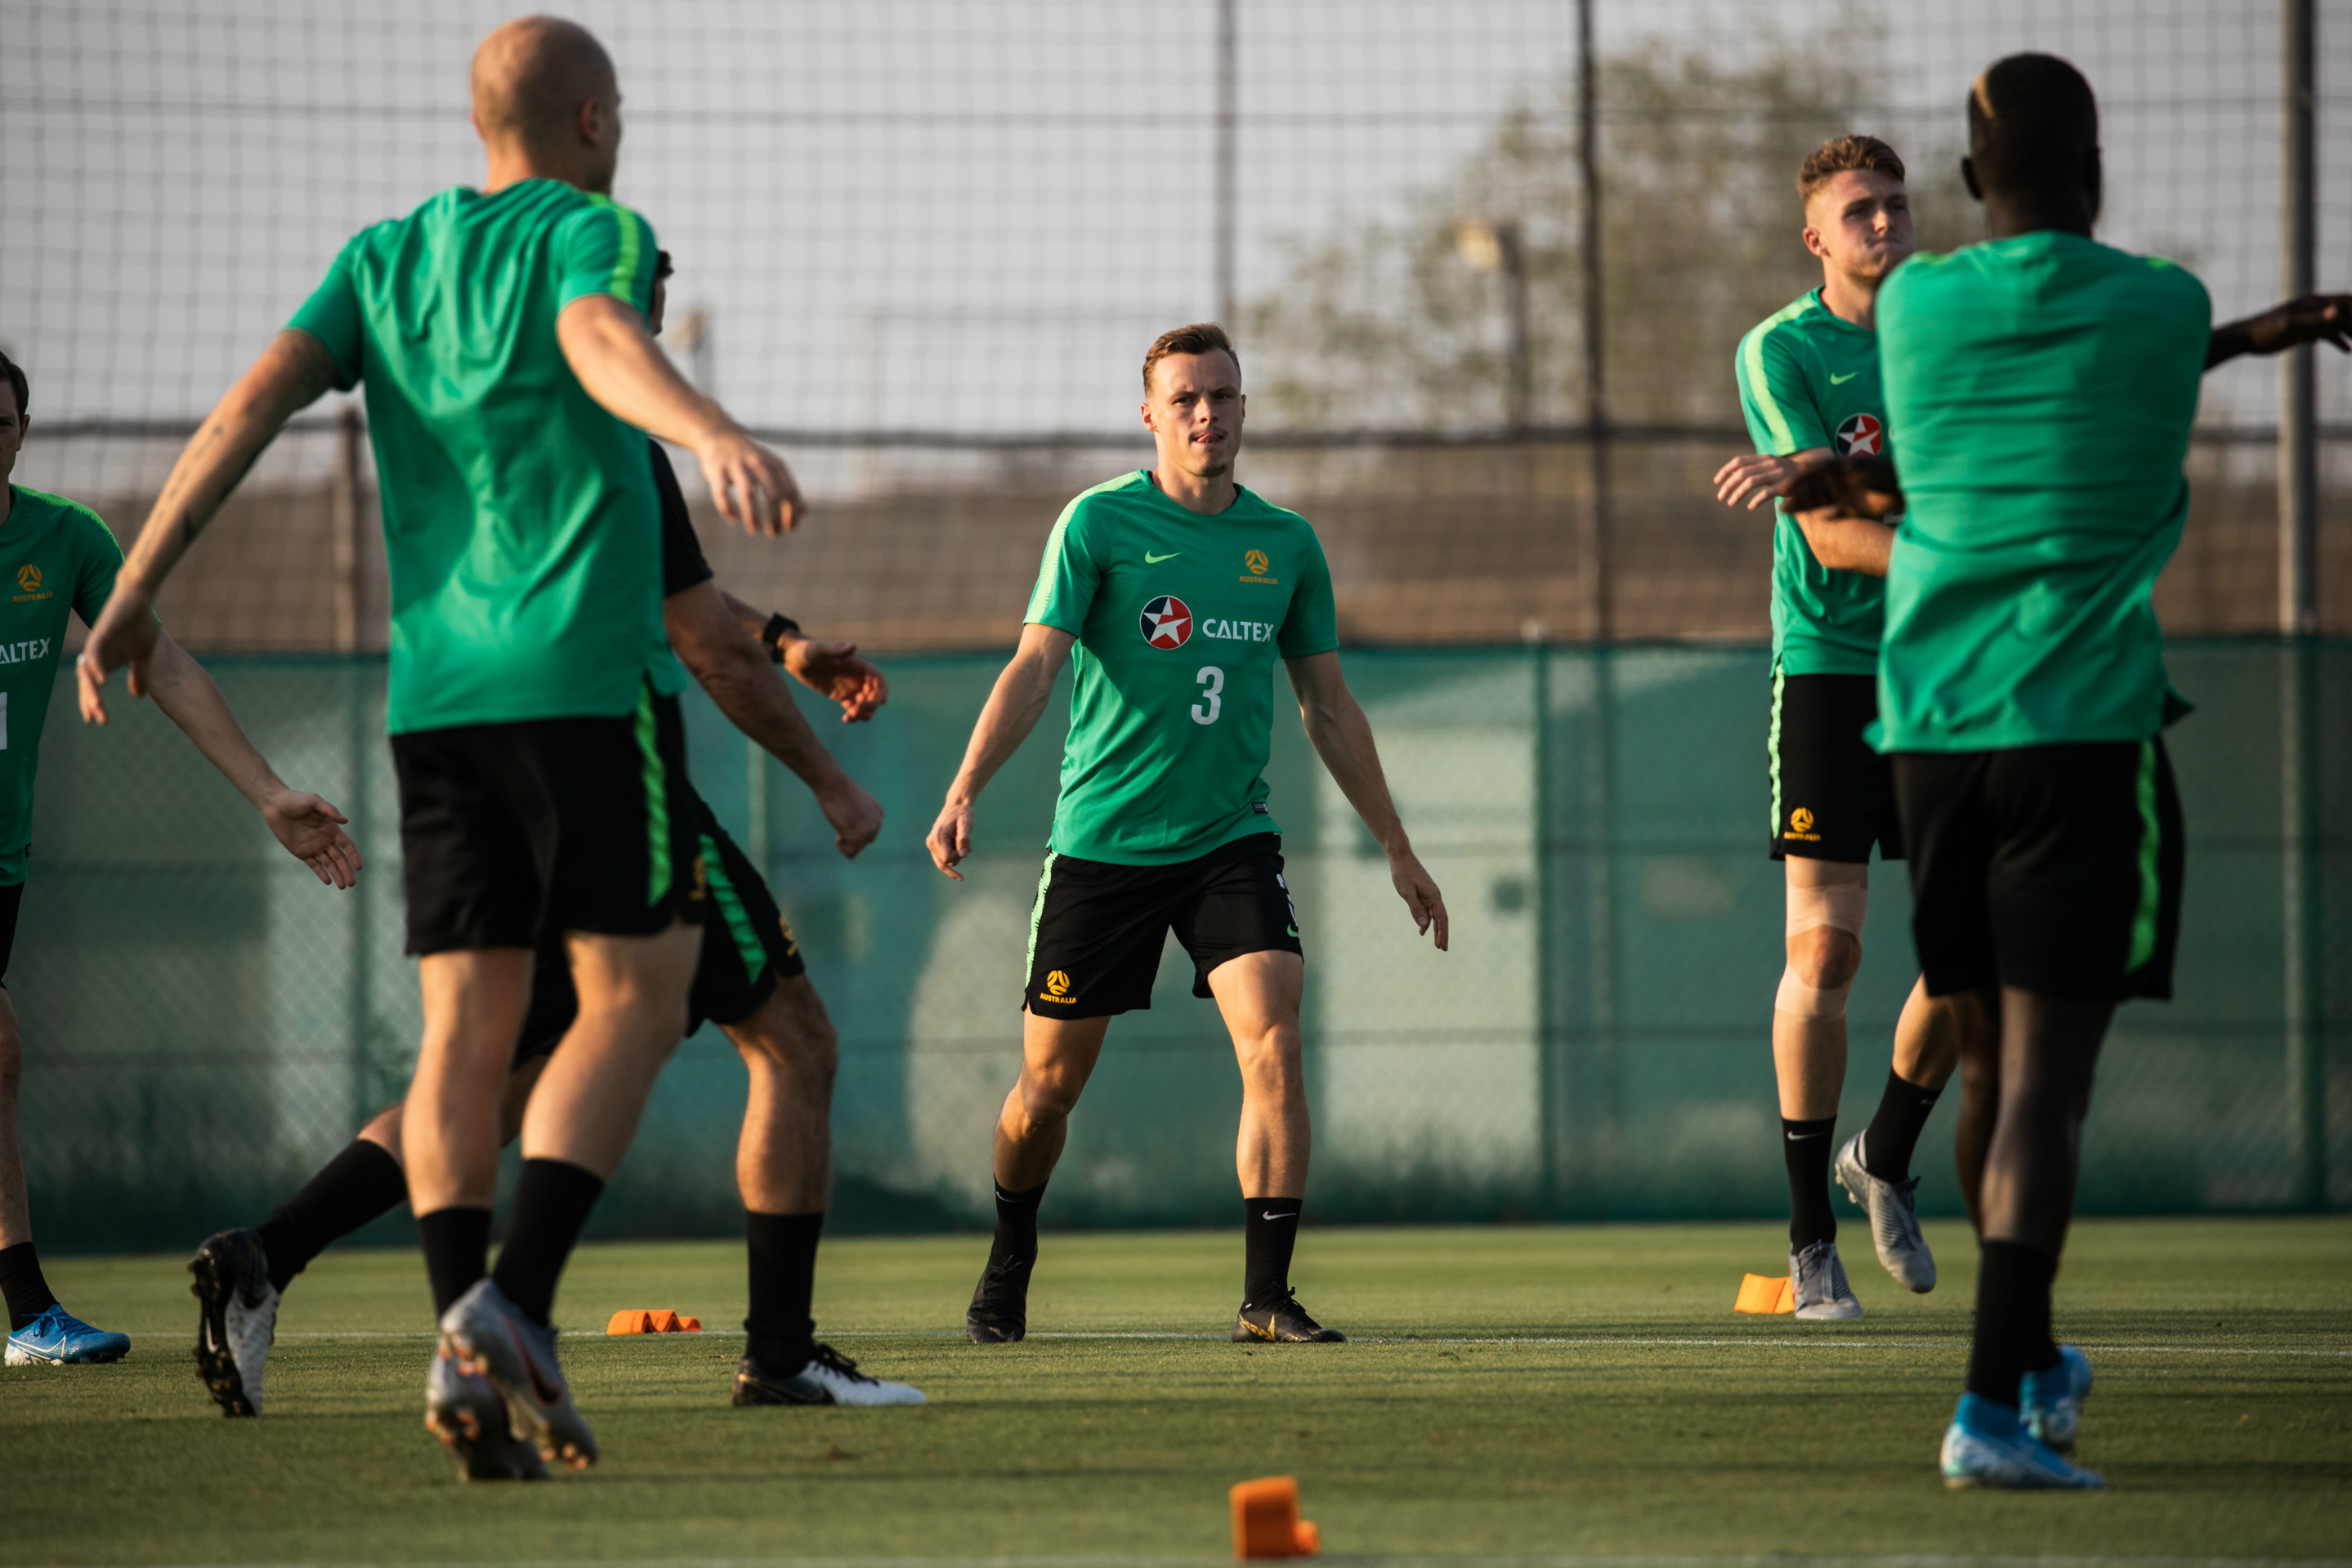 Brad Smith is relishing being back in camp with the Caltex Socceroos ahead of the Kuwait clash